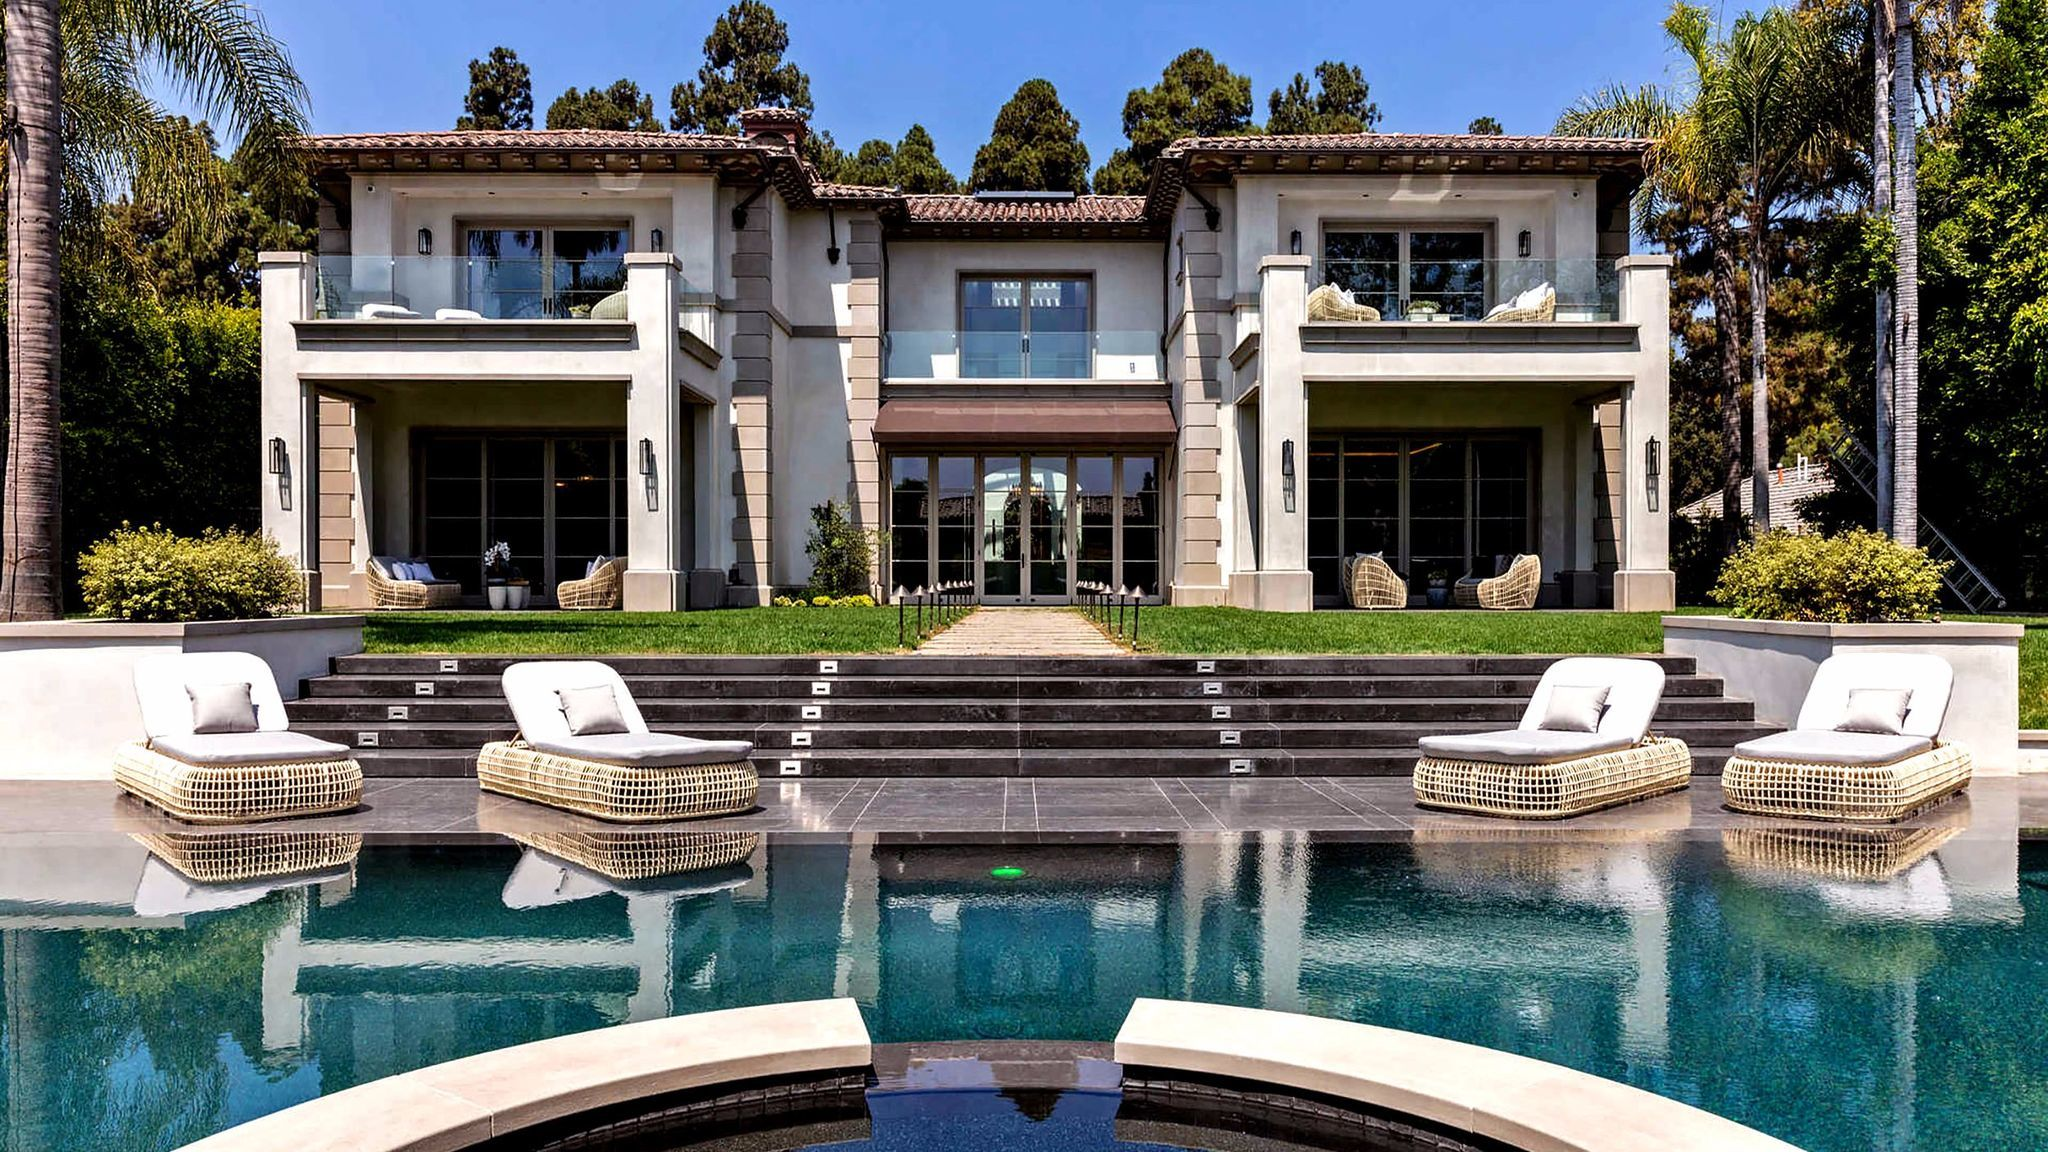 A newly built mansion on Lexington Drive in Beverly Hills sold for $26.75 million.